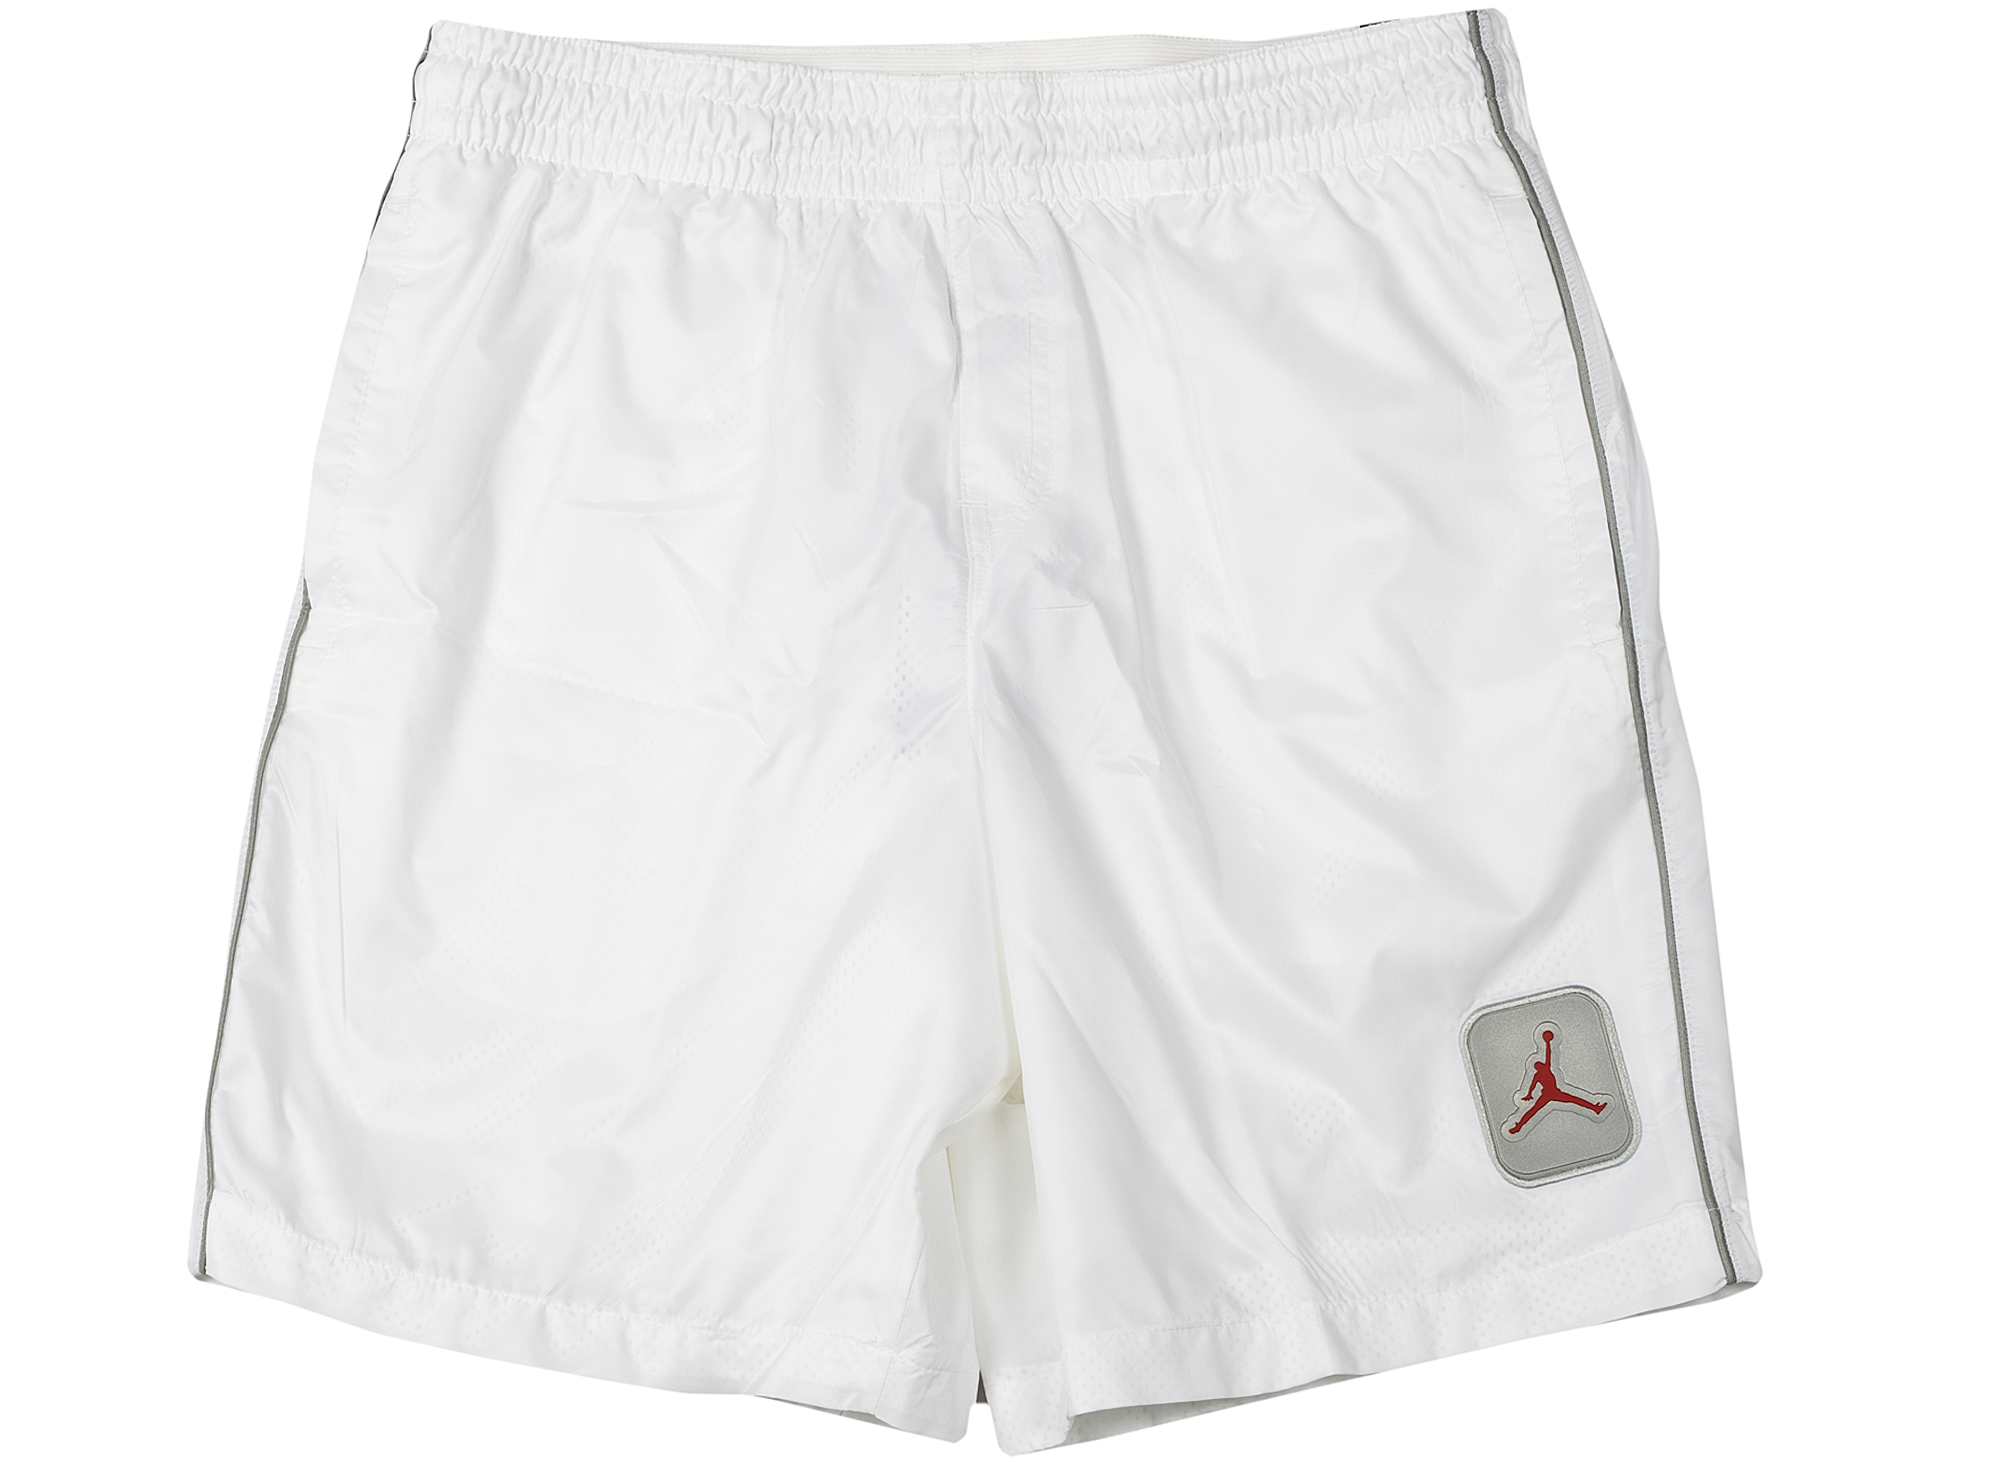 Jordan Legacy AJ5 Air Jordan 5 White Shorts